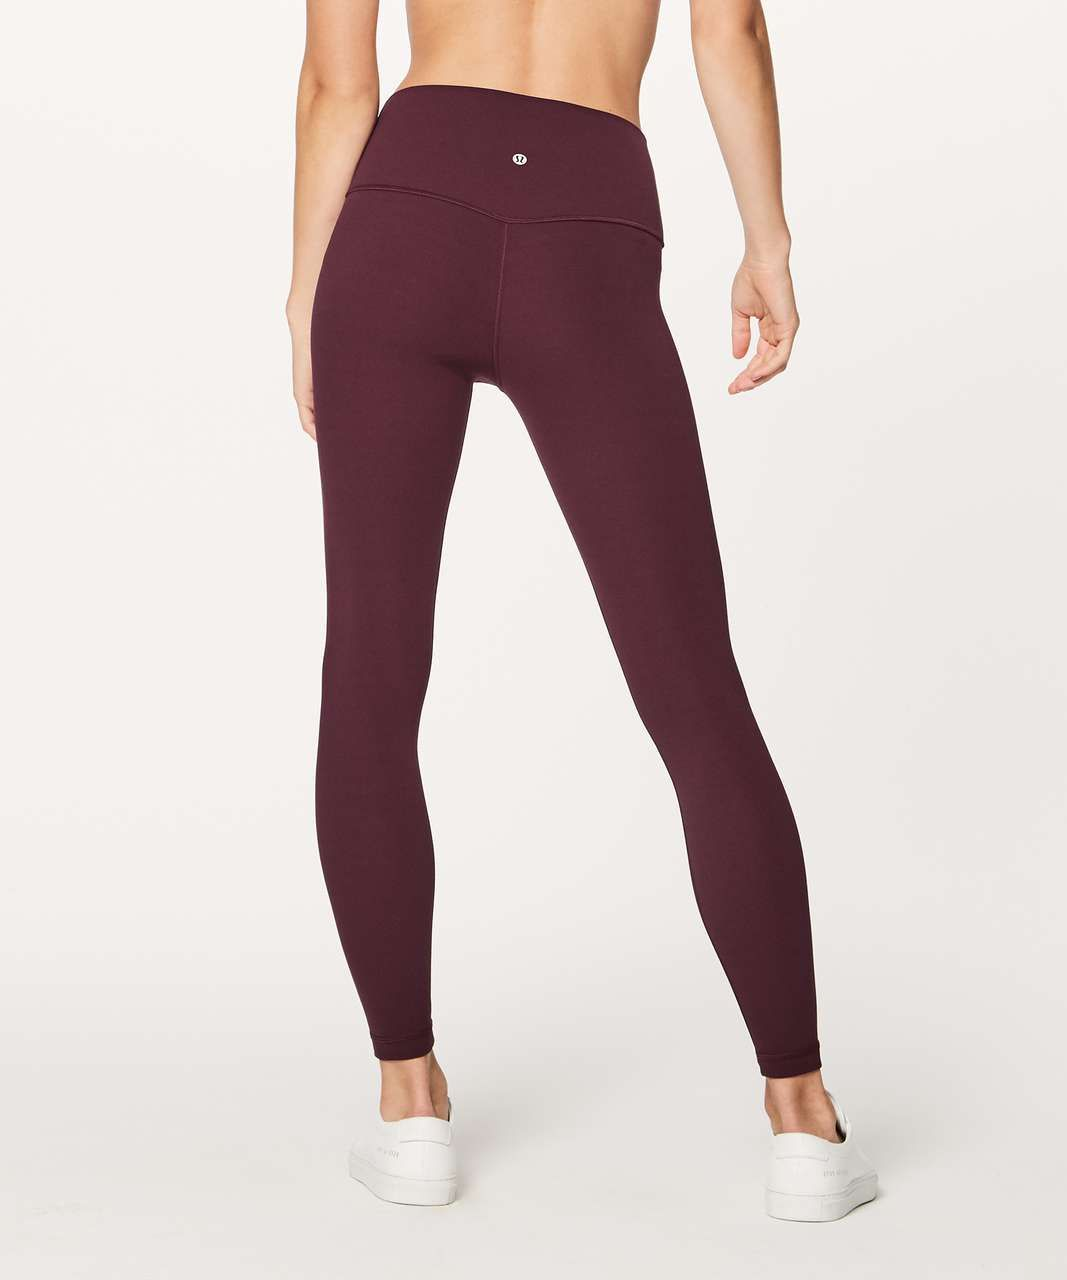 dbf26ace88 Color: dark adobe. Designed to minimize distractions and maximize comfort,  these tight-fitting pants offer light compression with full freedom to move.